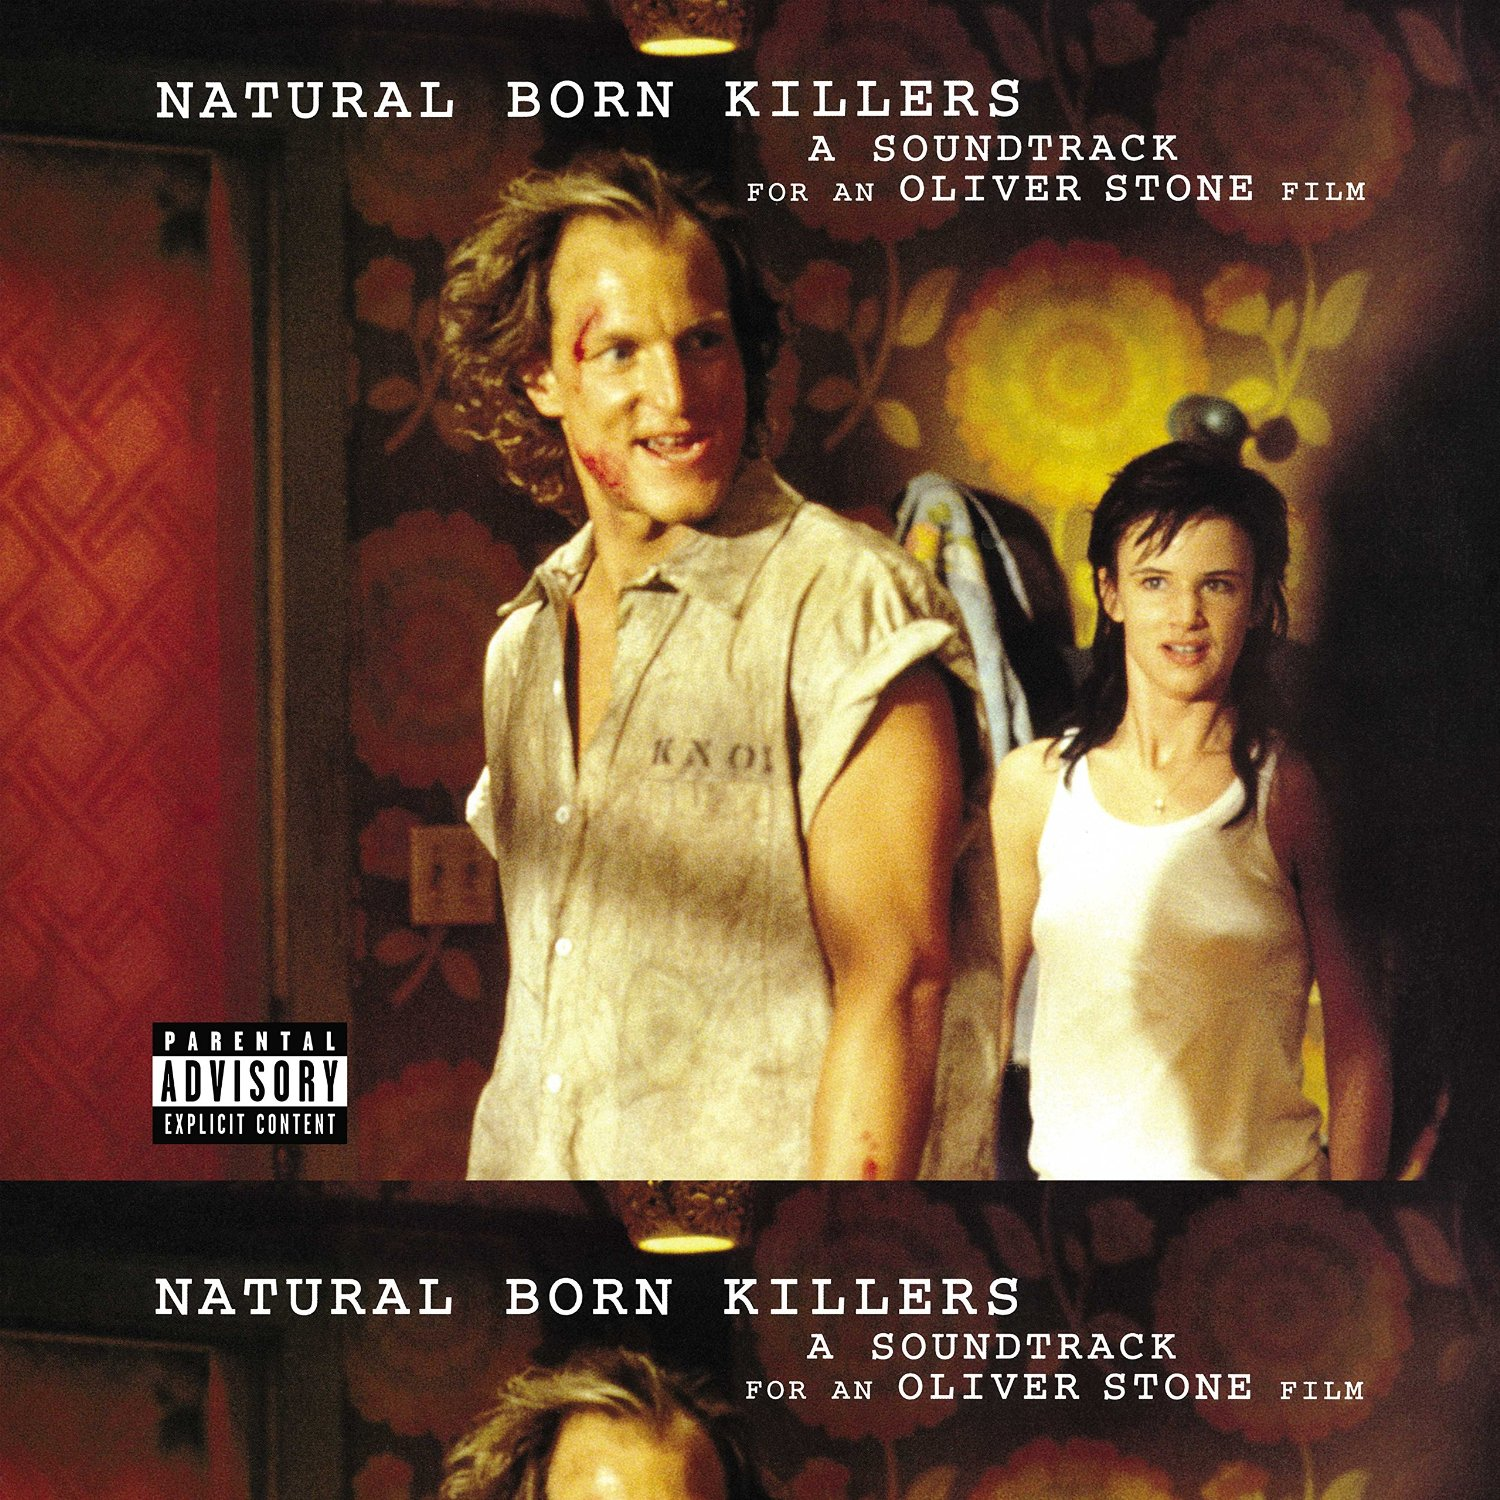 an analysis of natural born killers a film by oliver stone Culture film: the business of murder: oliver stone's satire, natural born killers has spawned a mini- industry of outraged analysis, as well as, it.